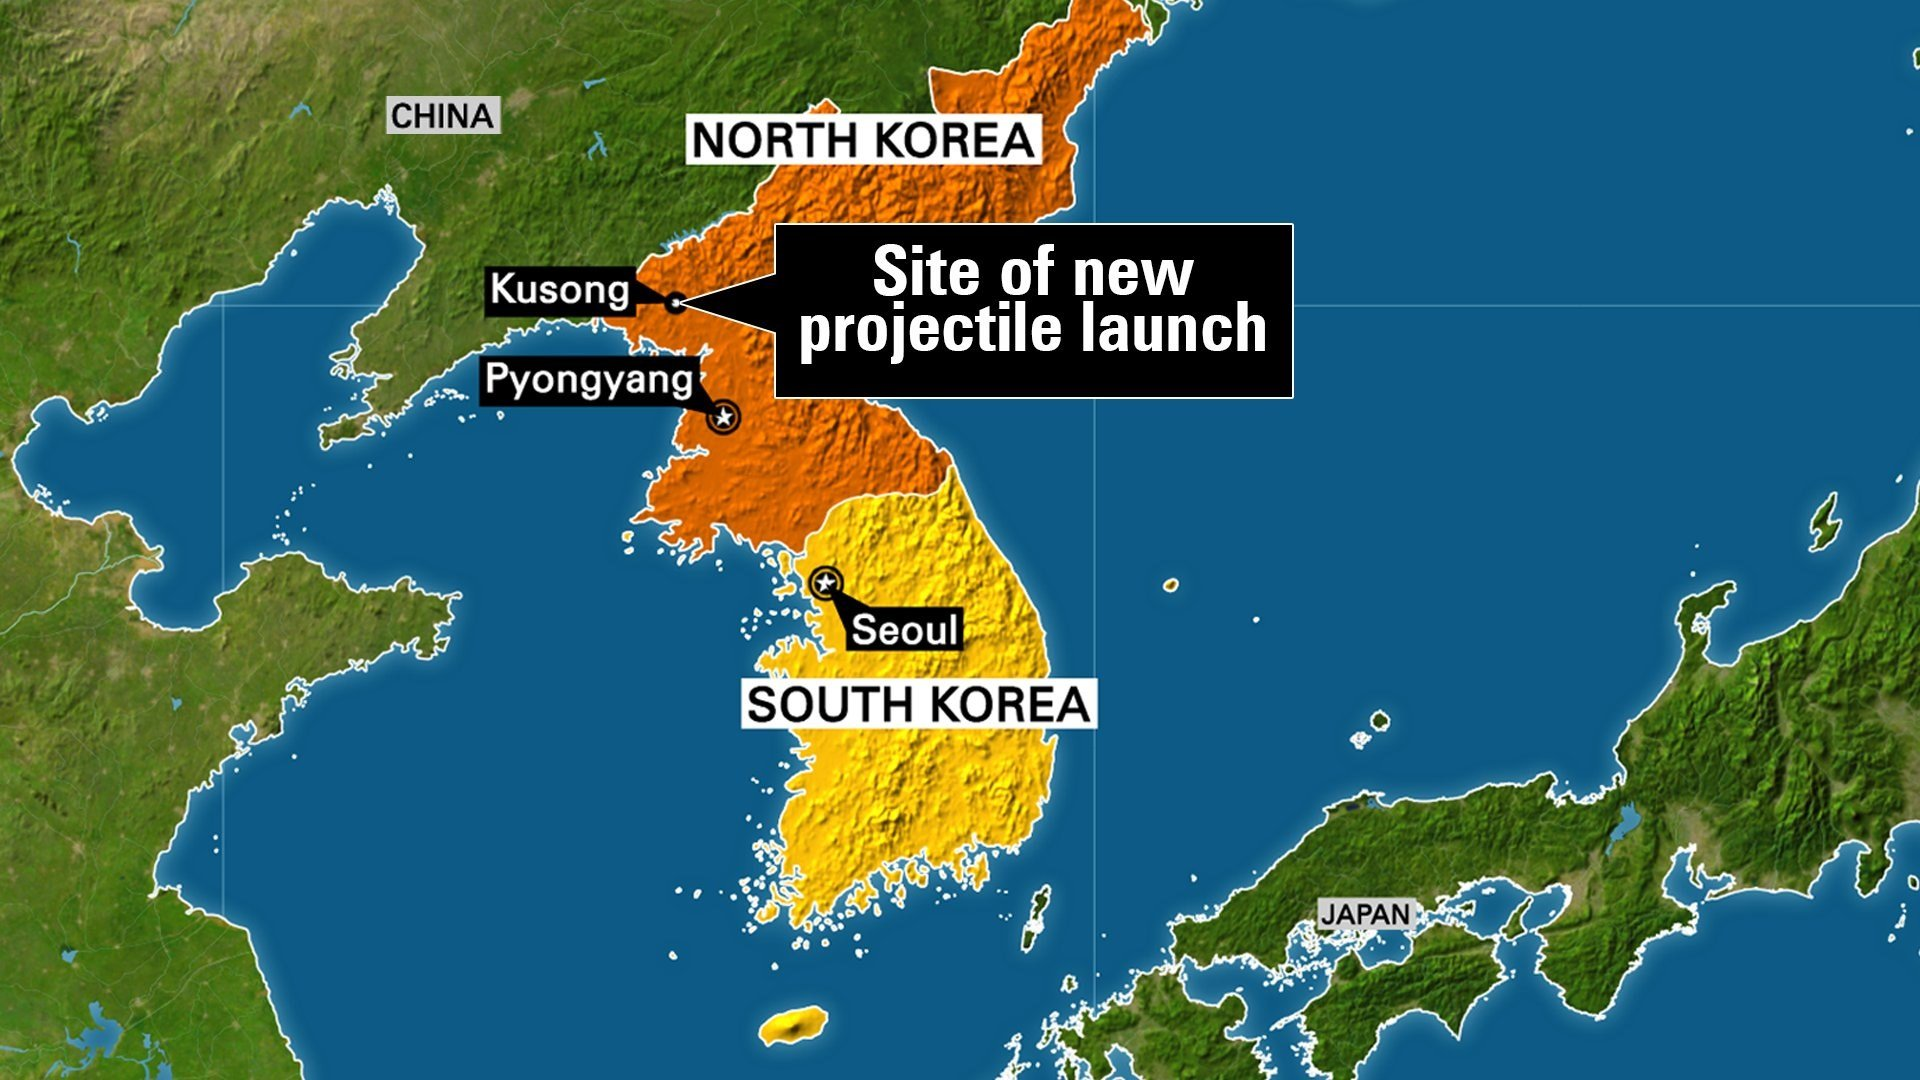 New long-range missile can carry heavy nuclear warhead, North Korea says